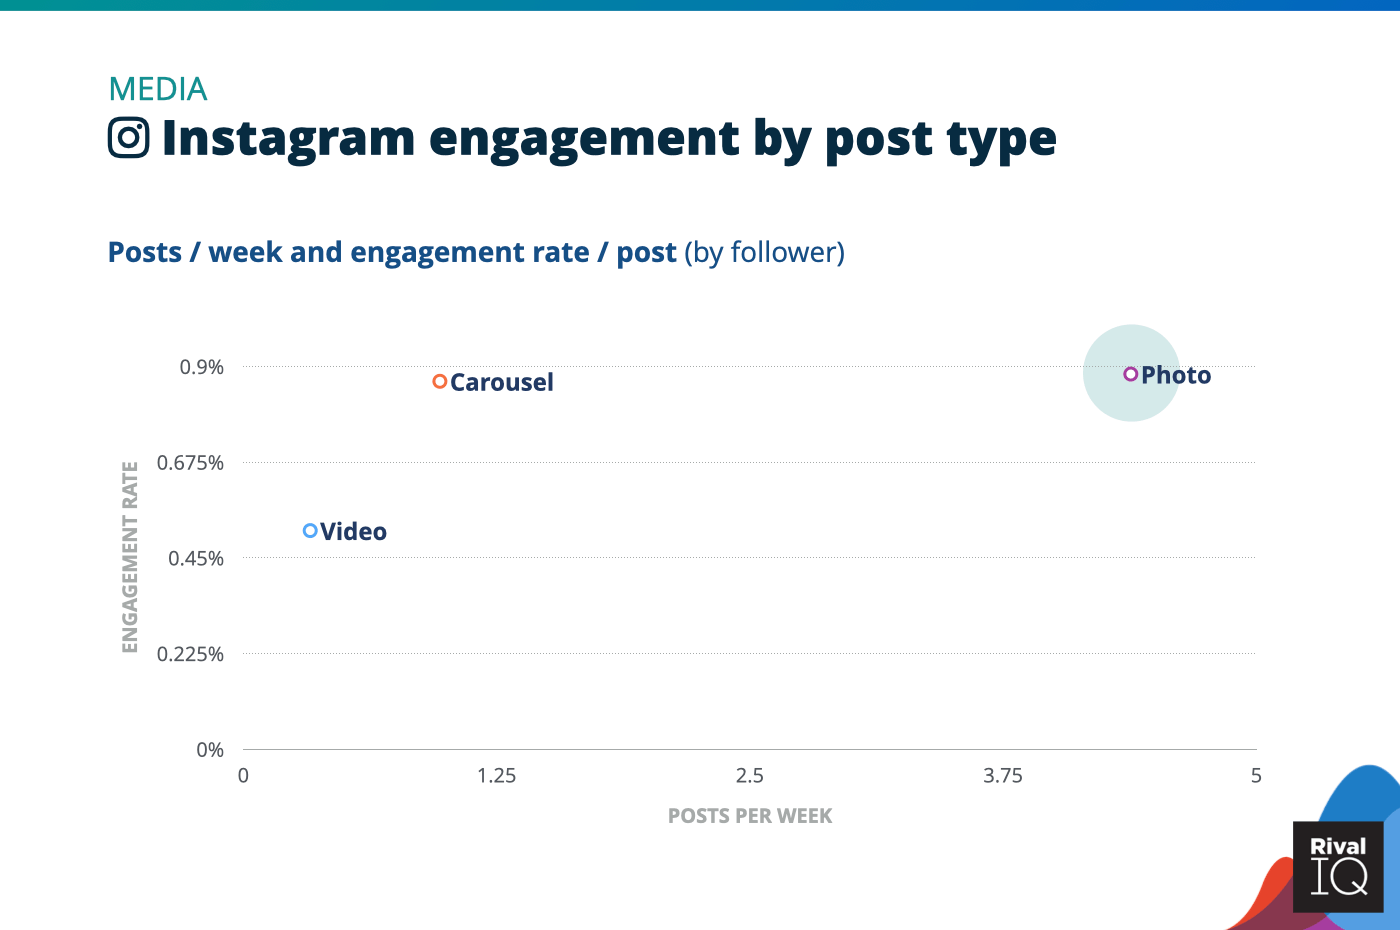 Chart of Instagram posts per week and engagement rate by post type, Media